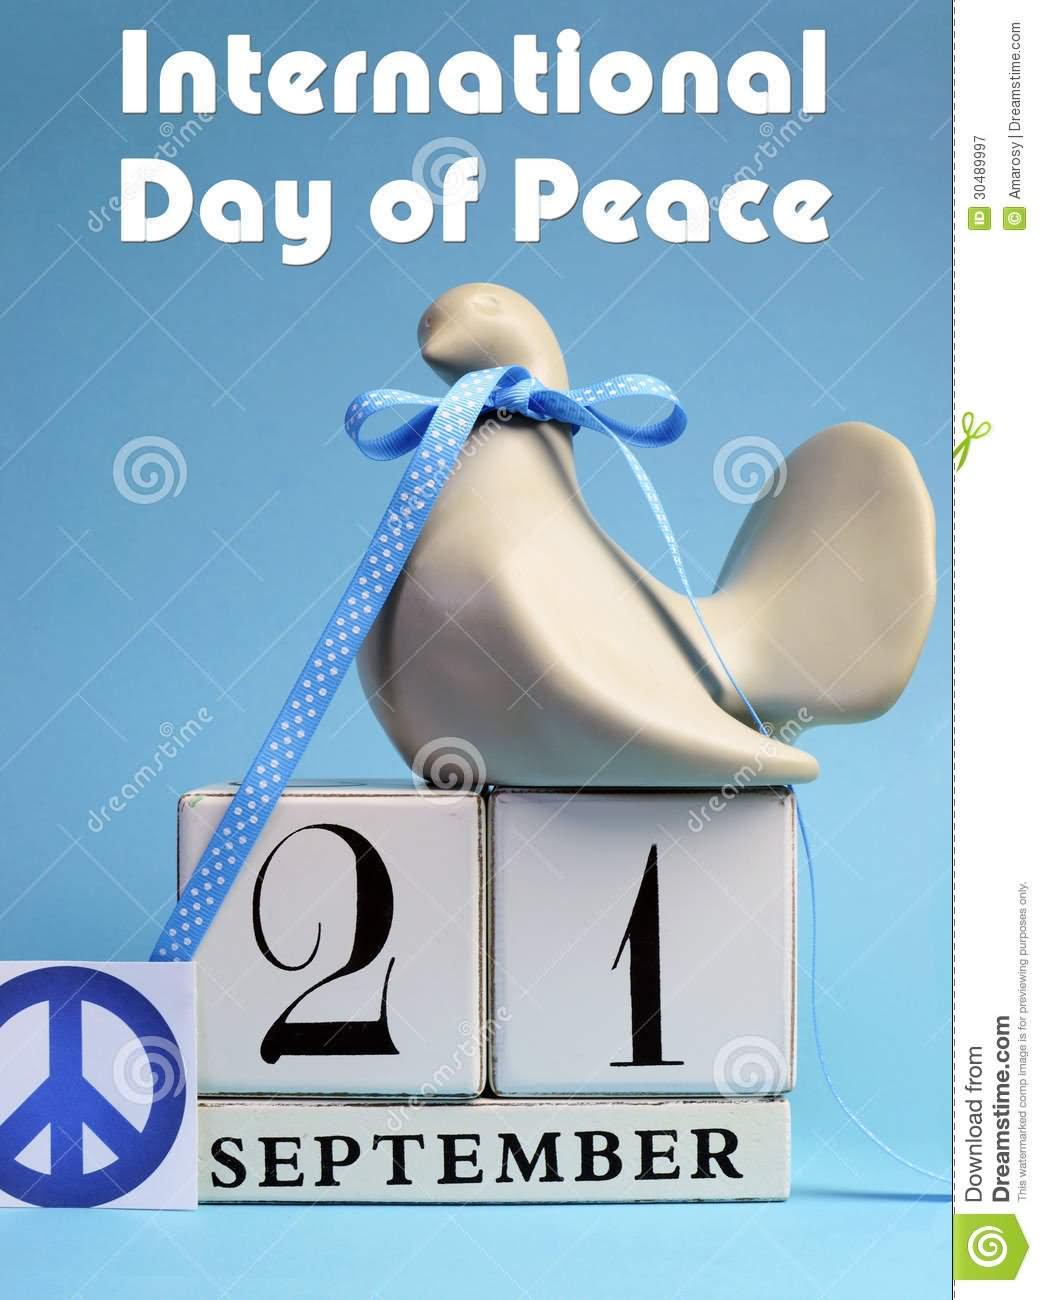 127-International Peace Day Wishes